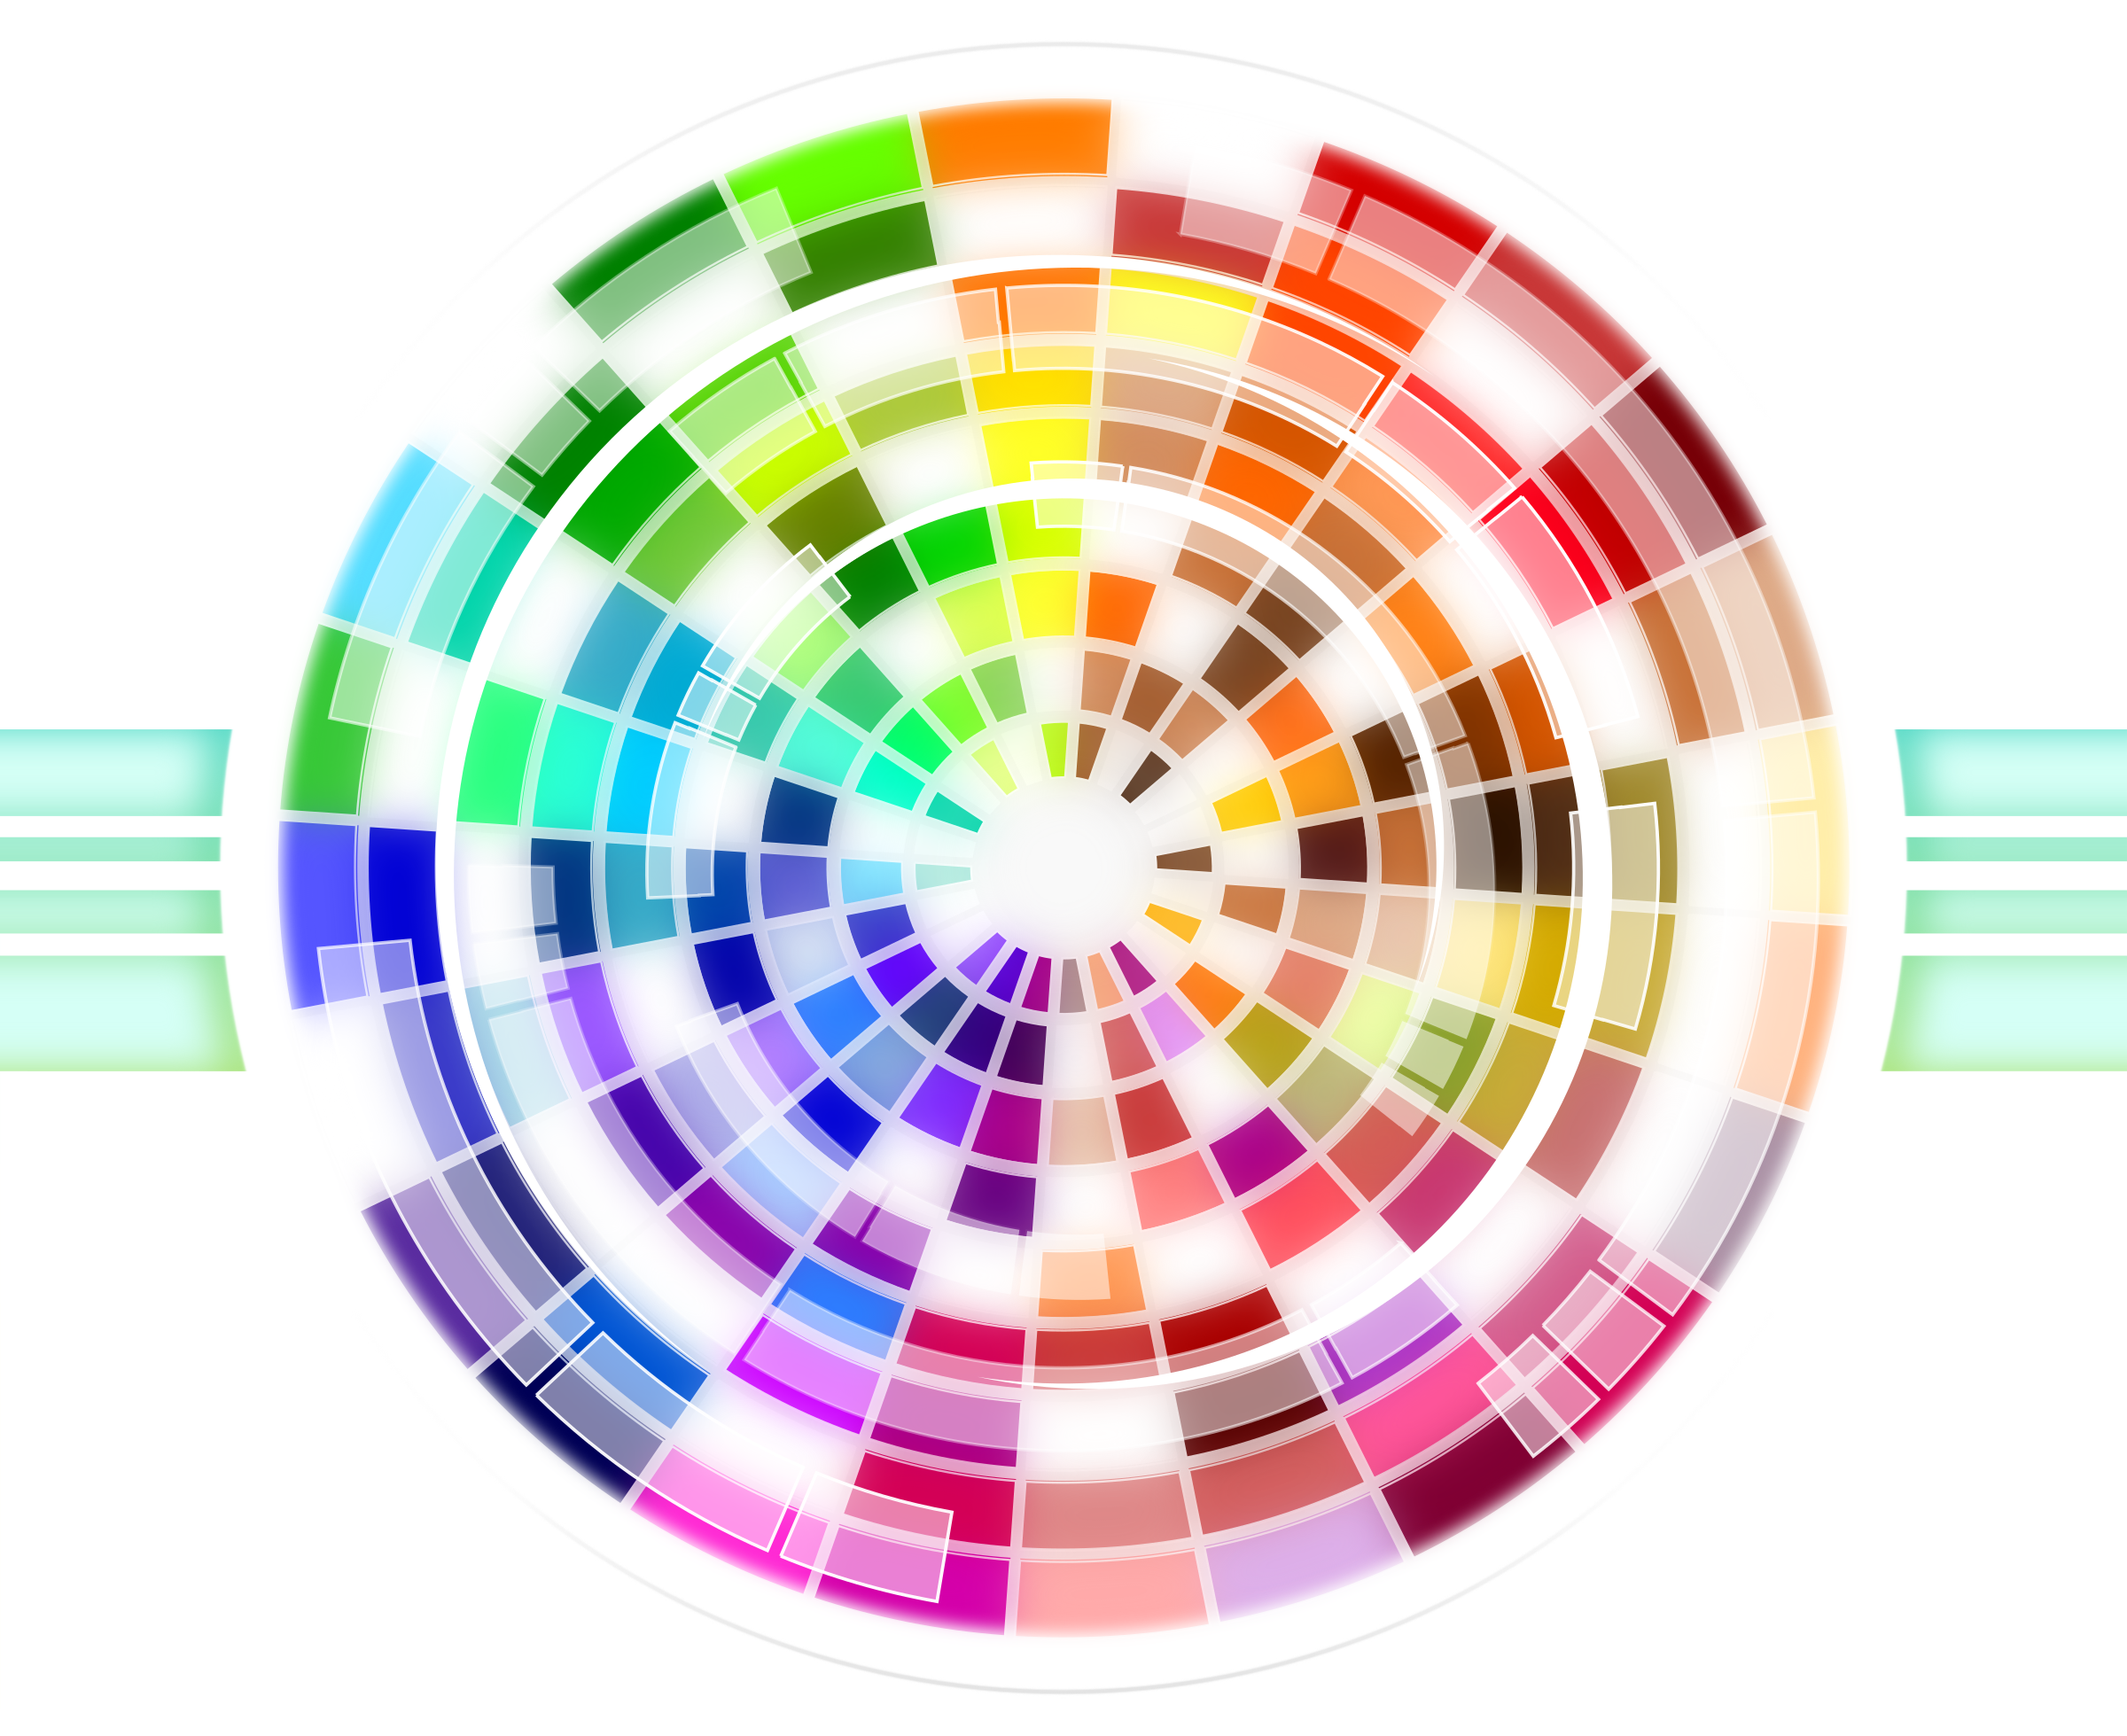 Multicolored Wheel Abstract Background by Viscious-Speed